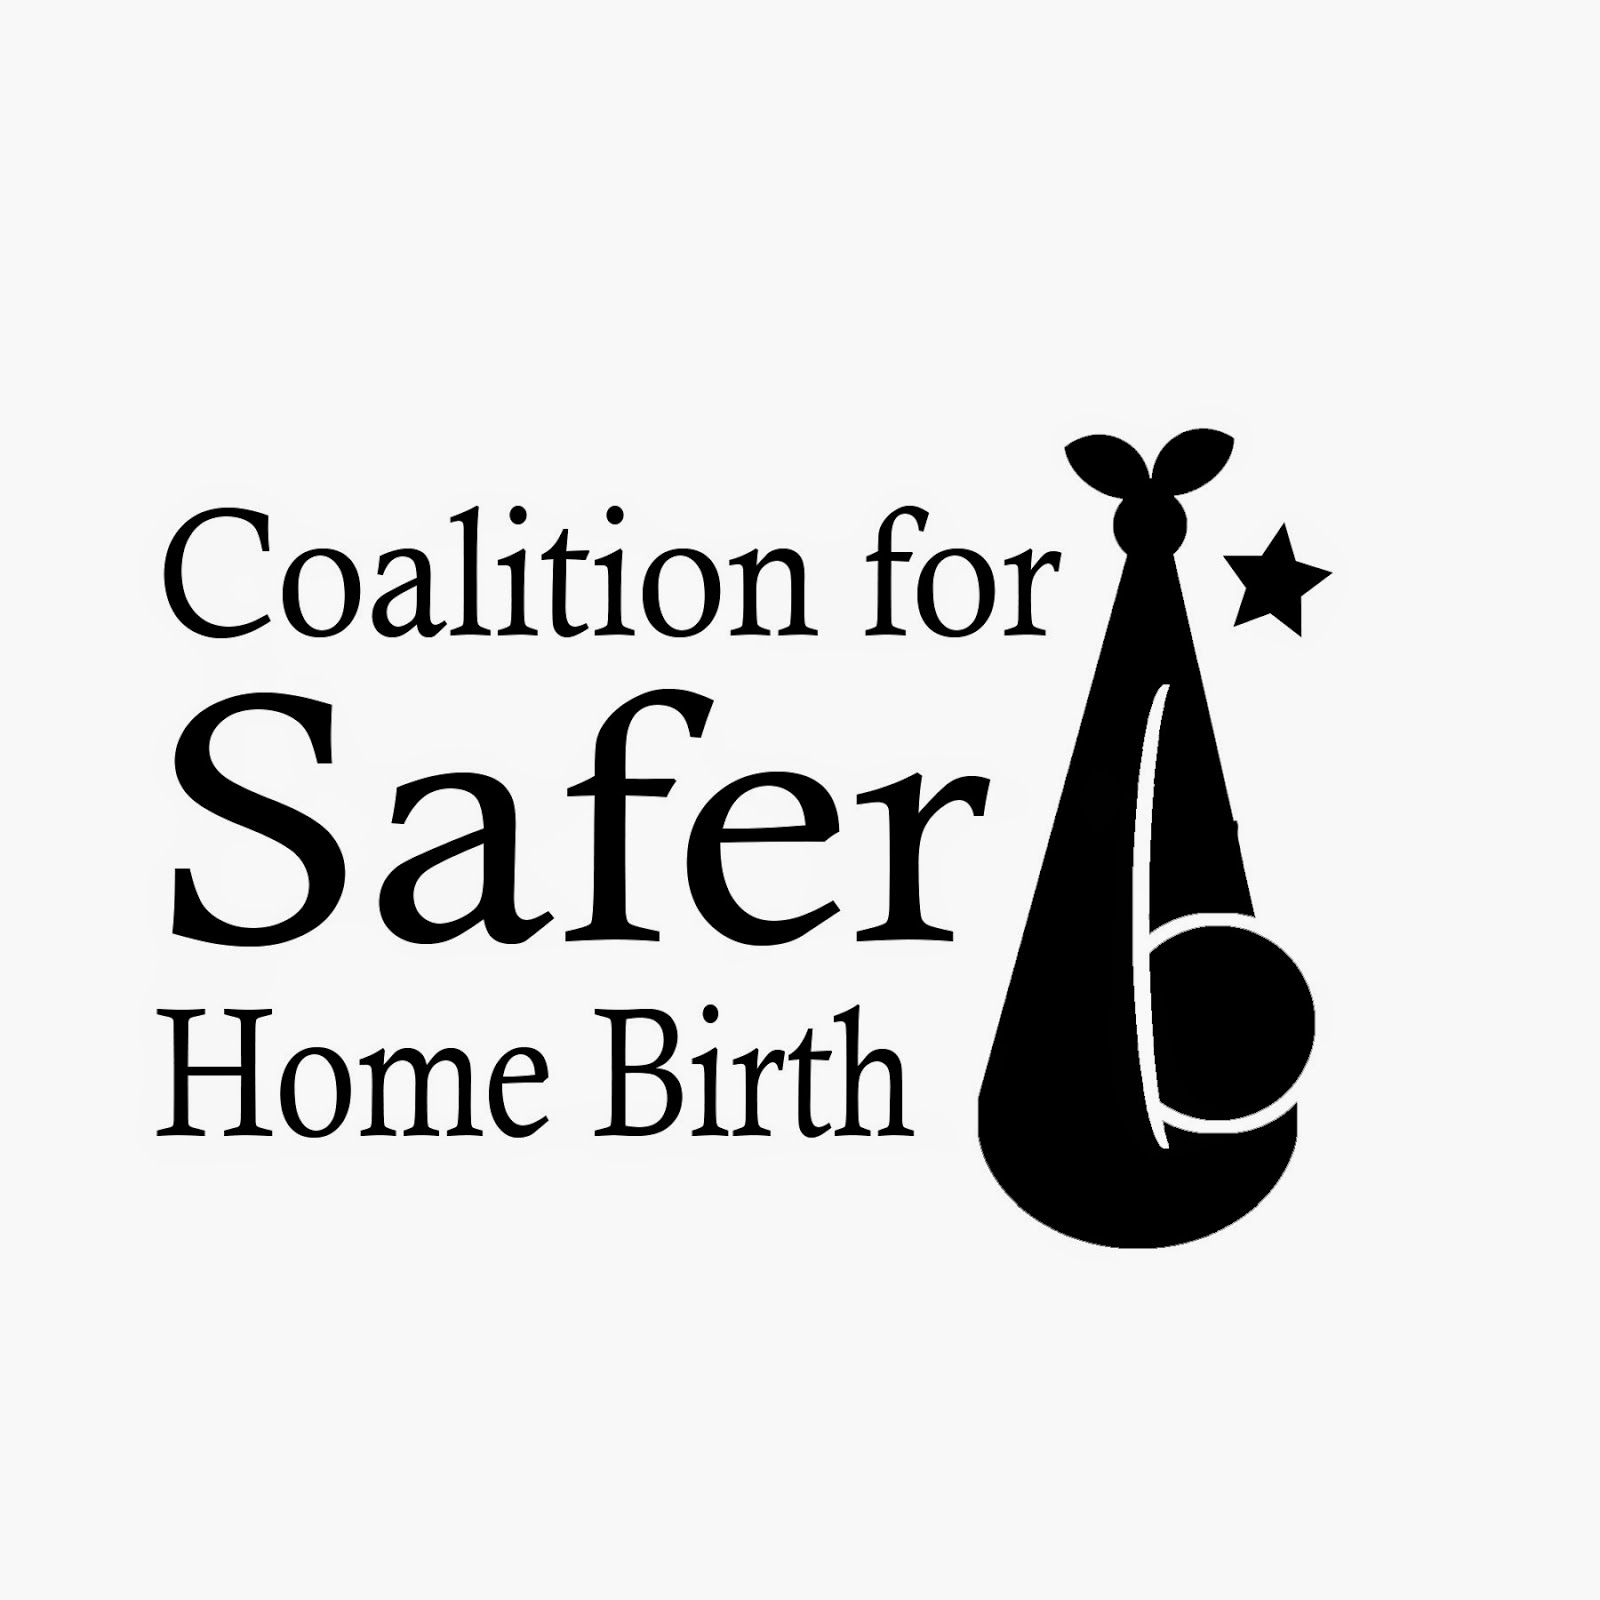 Coalition for Safer Home Birth